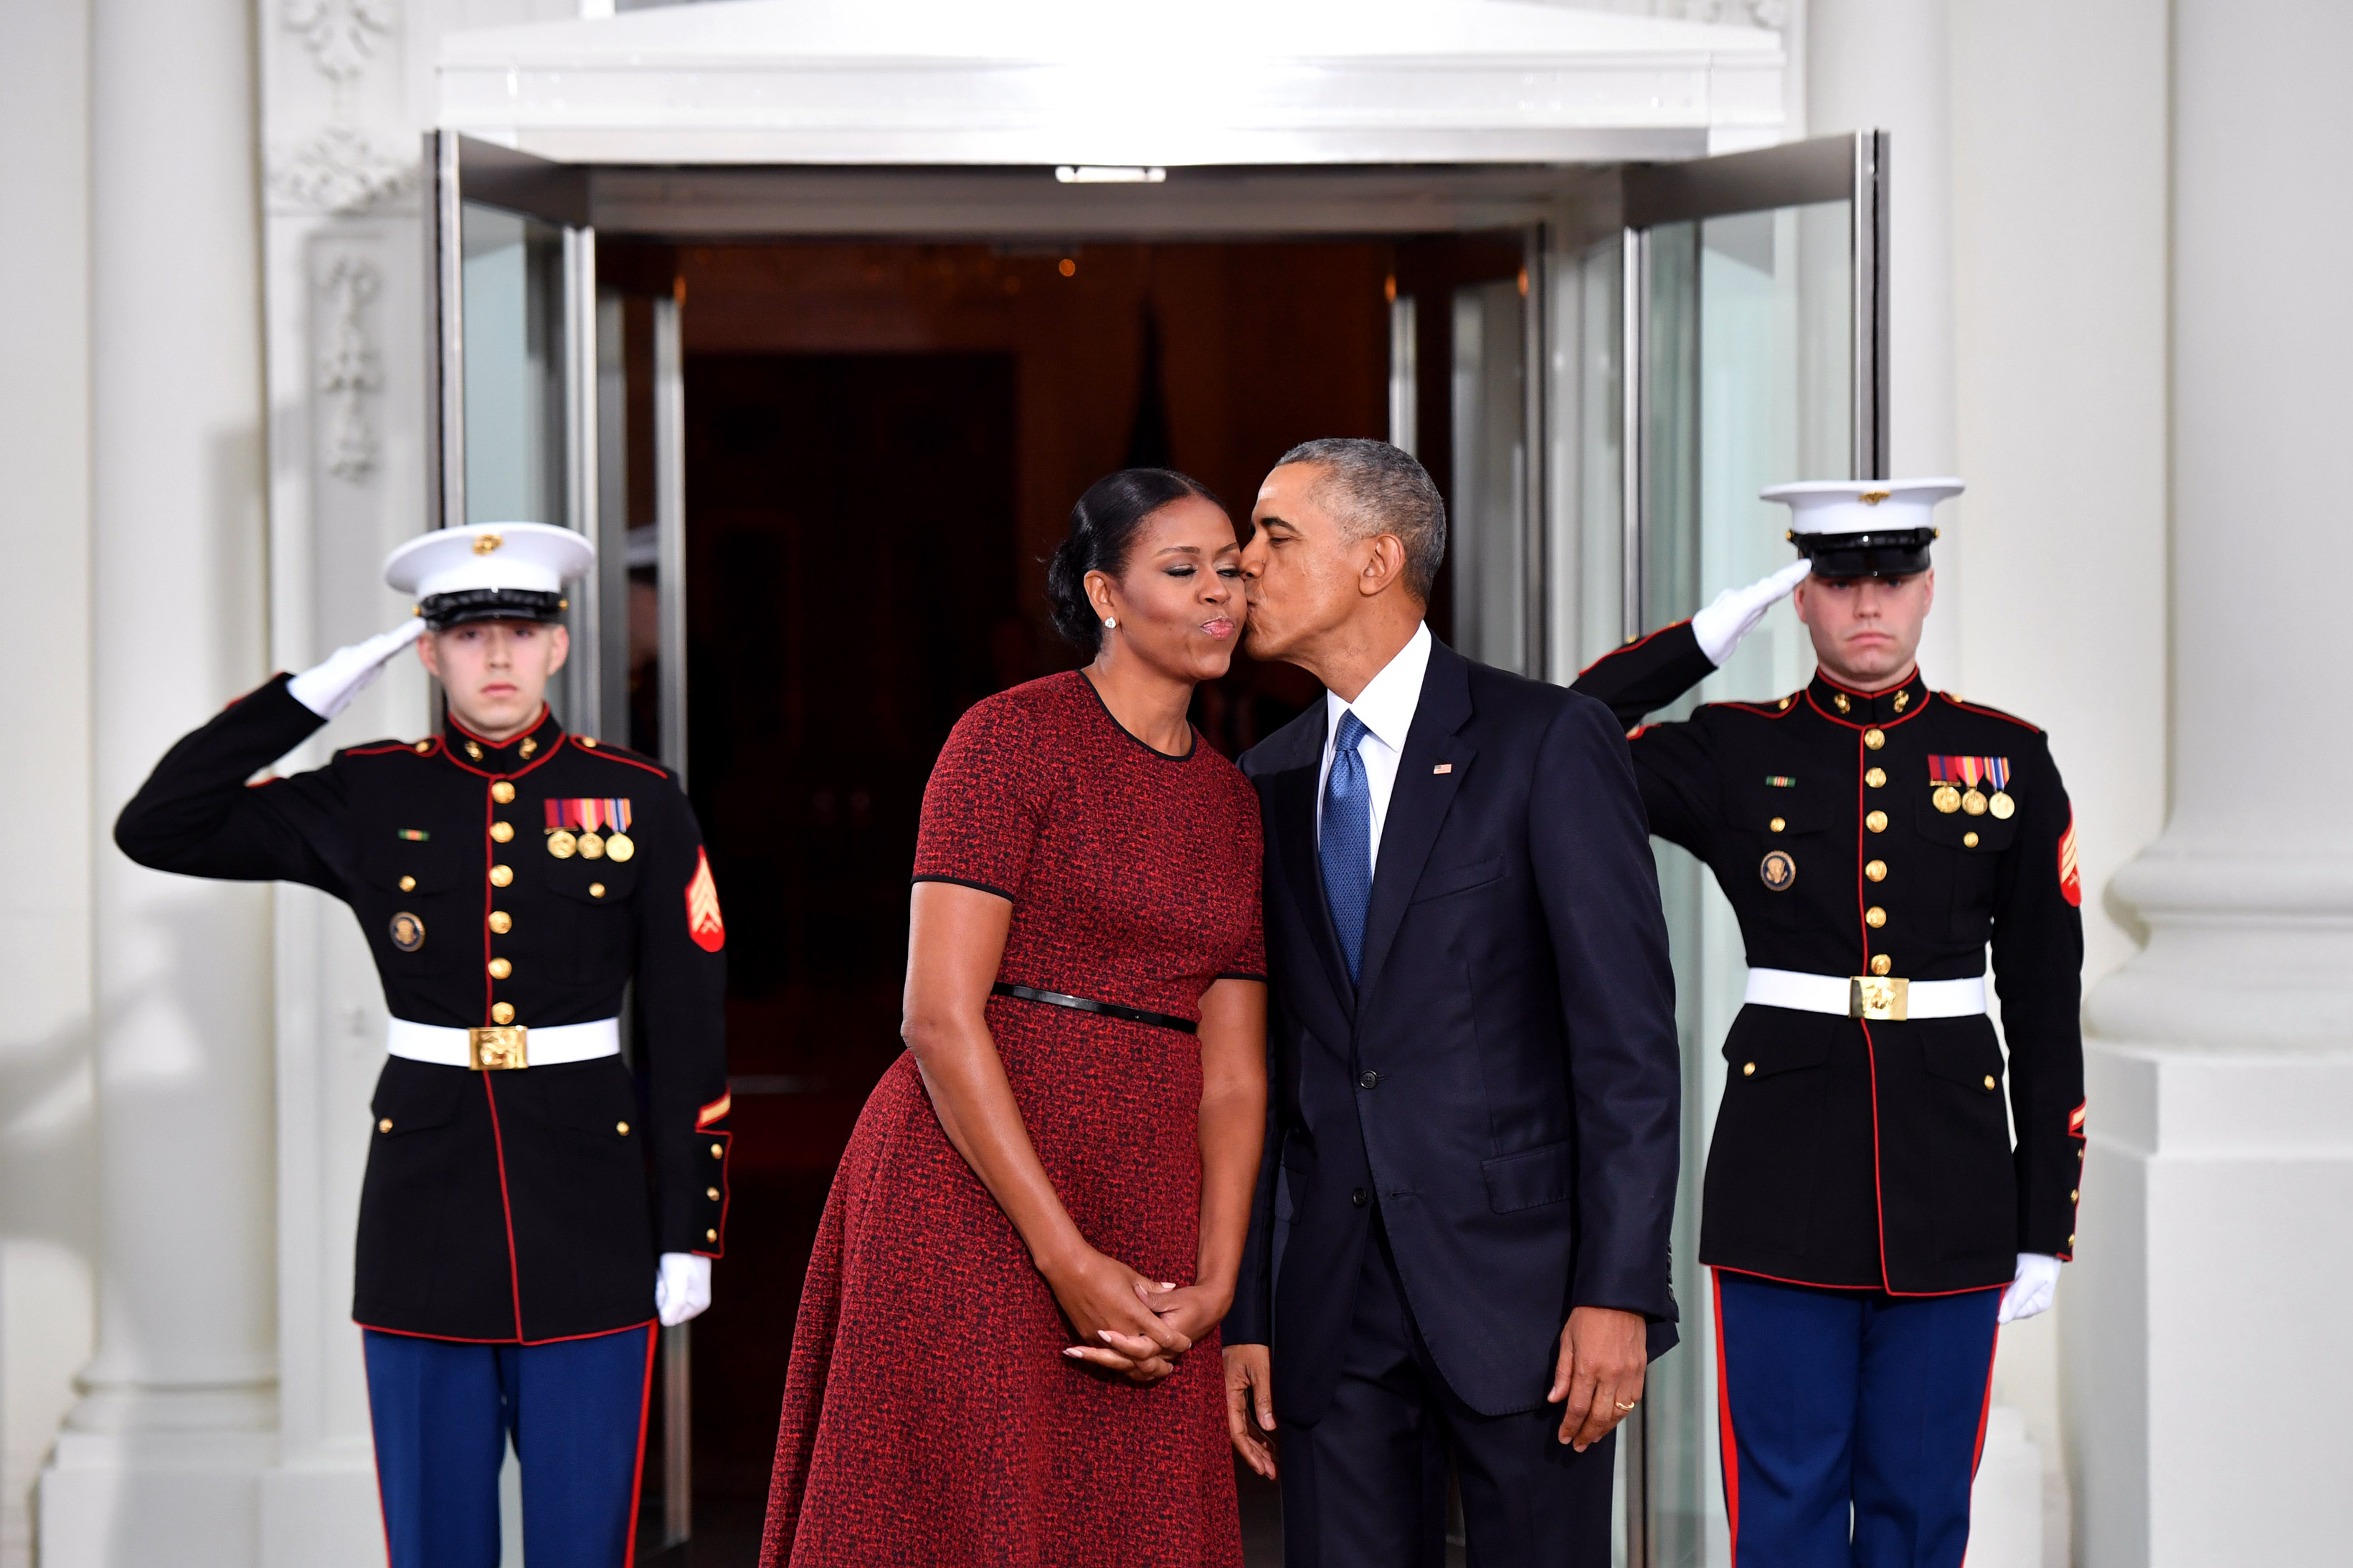 barack obama and michelle obama kiss on cheek